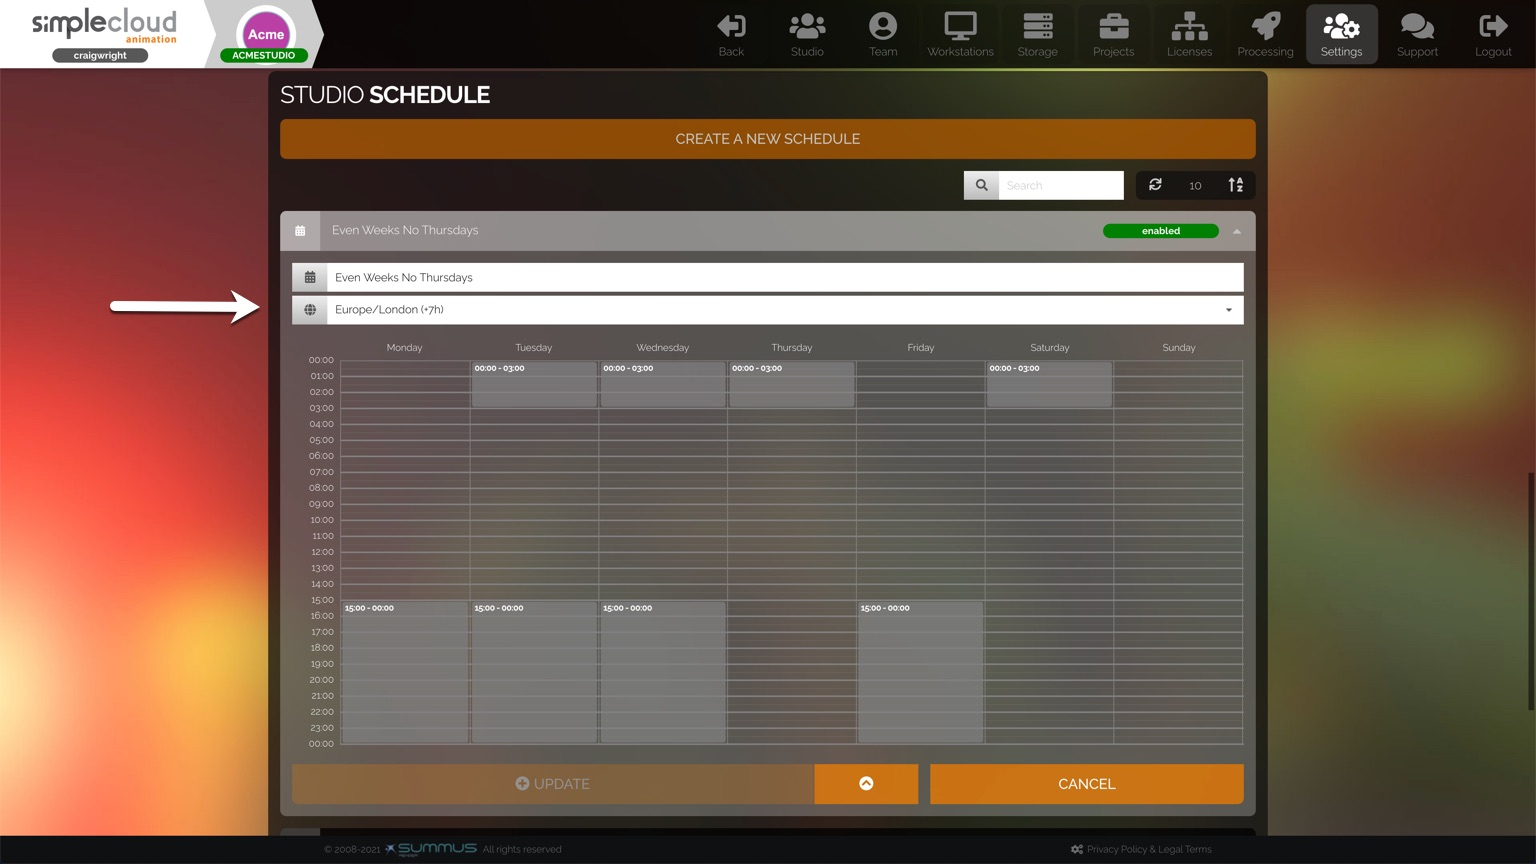 Studio schedule has option for changing time zone.